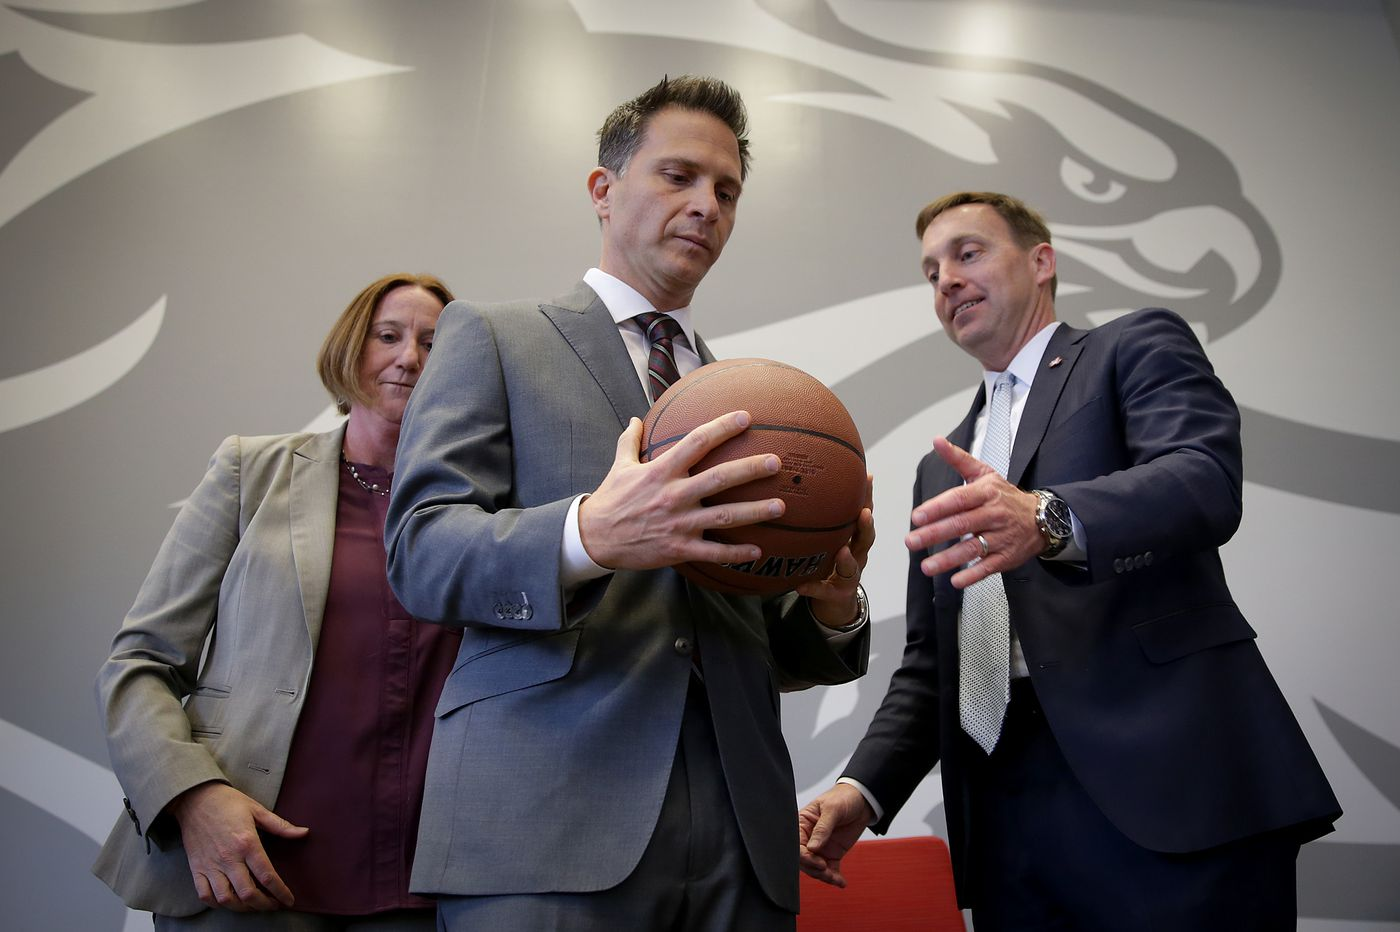 As St. Joseph's new coach, Billy Lange faces a big challenge in the modern Big Five | Mike Sielski